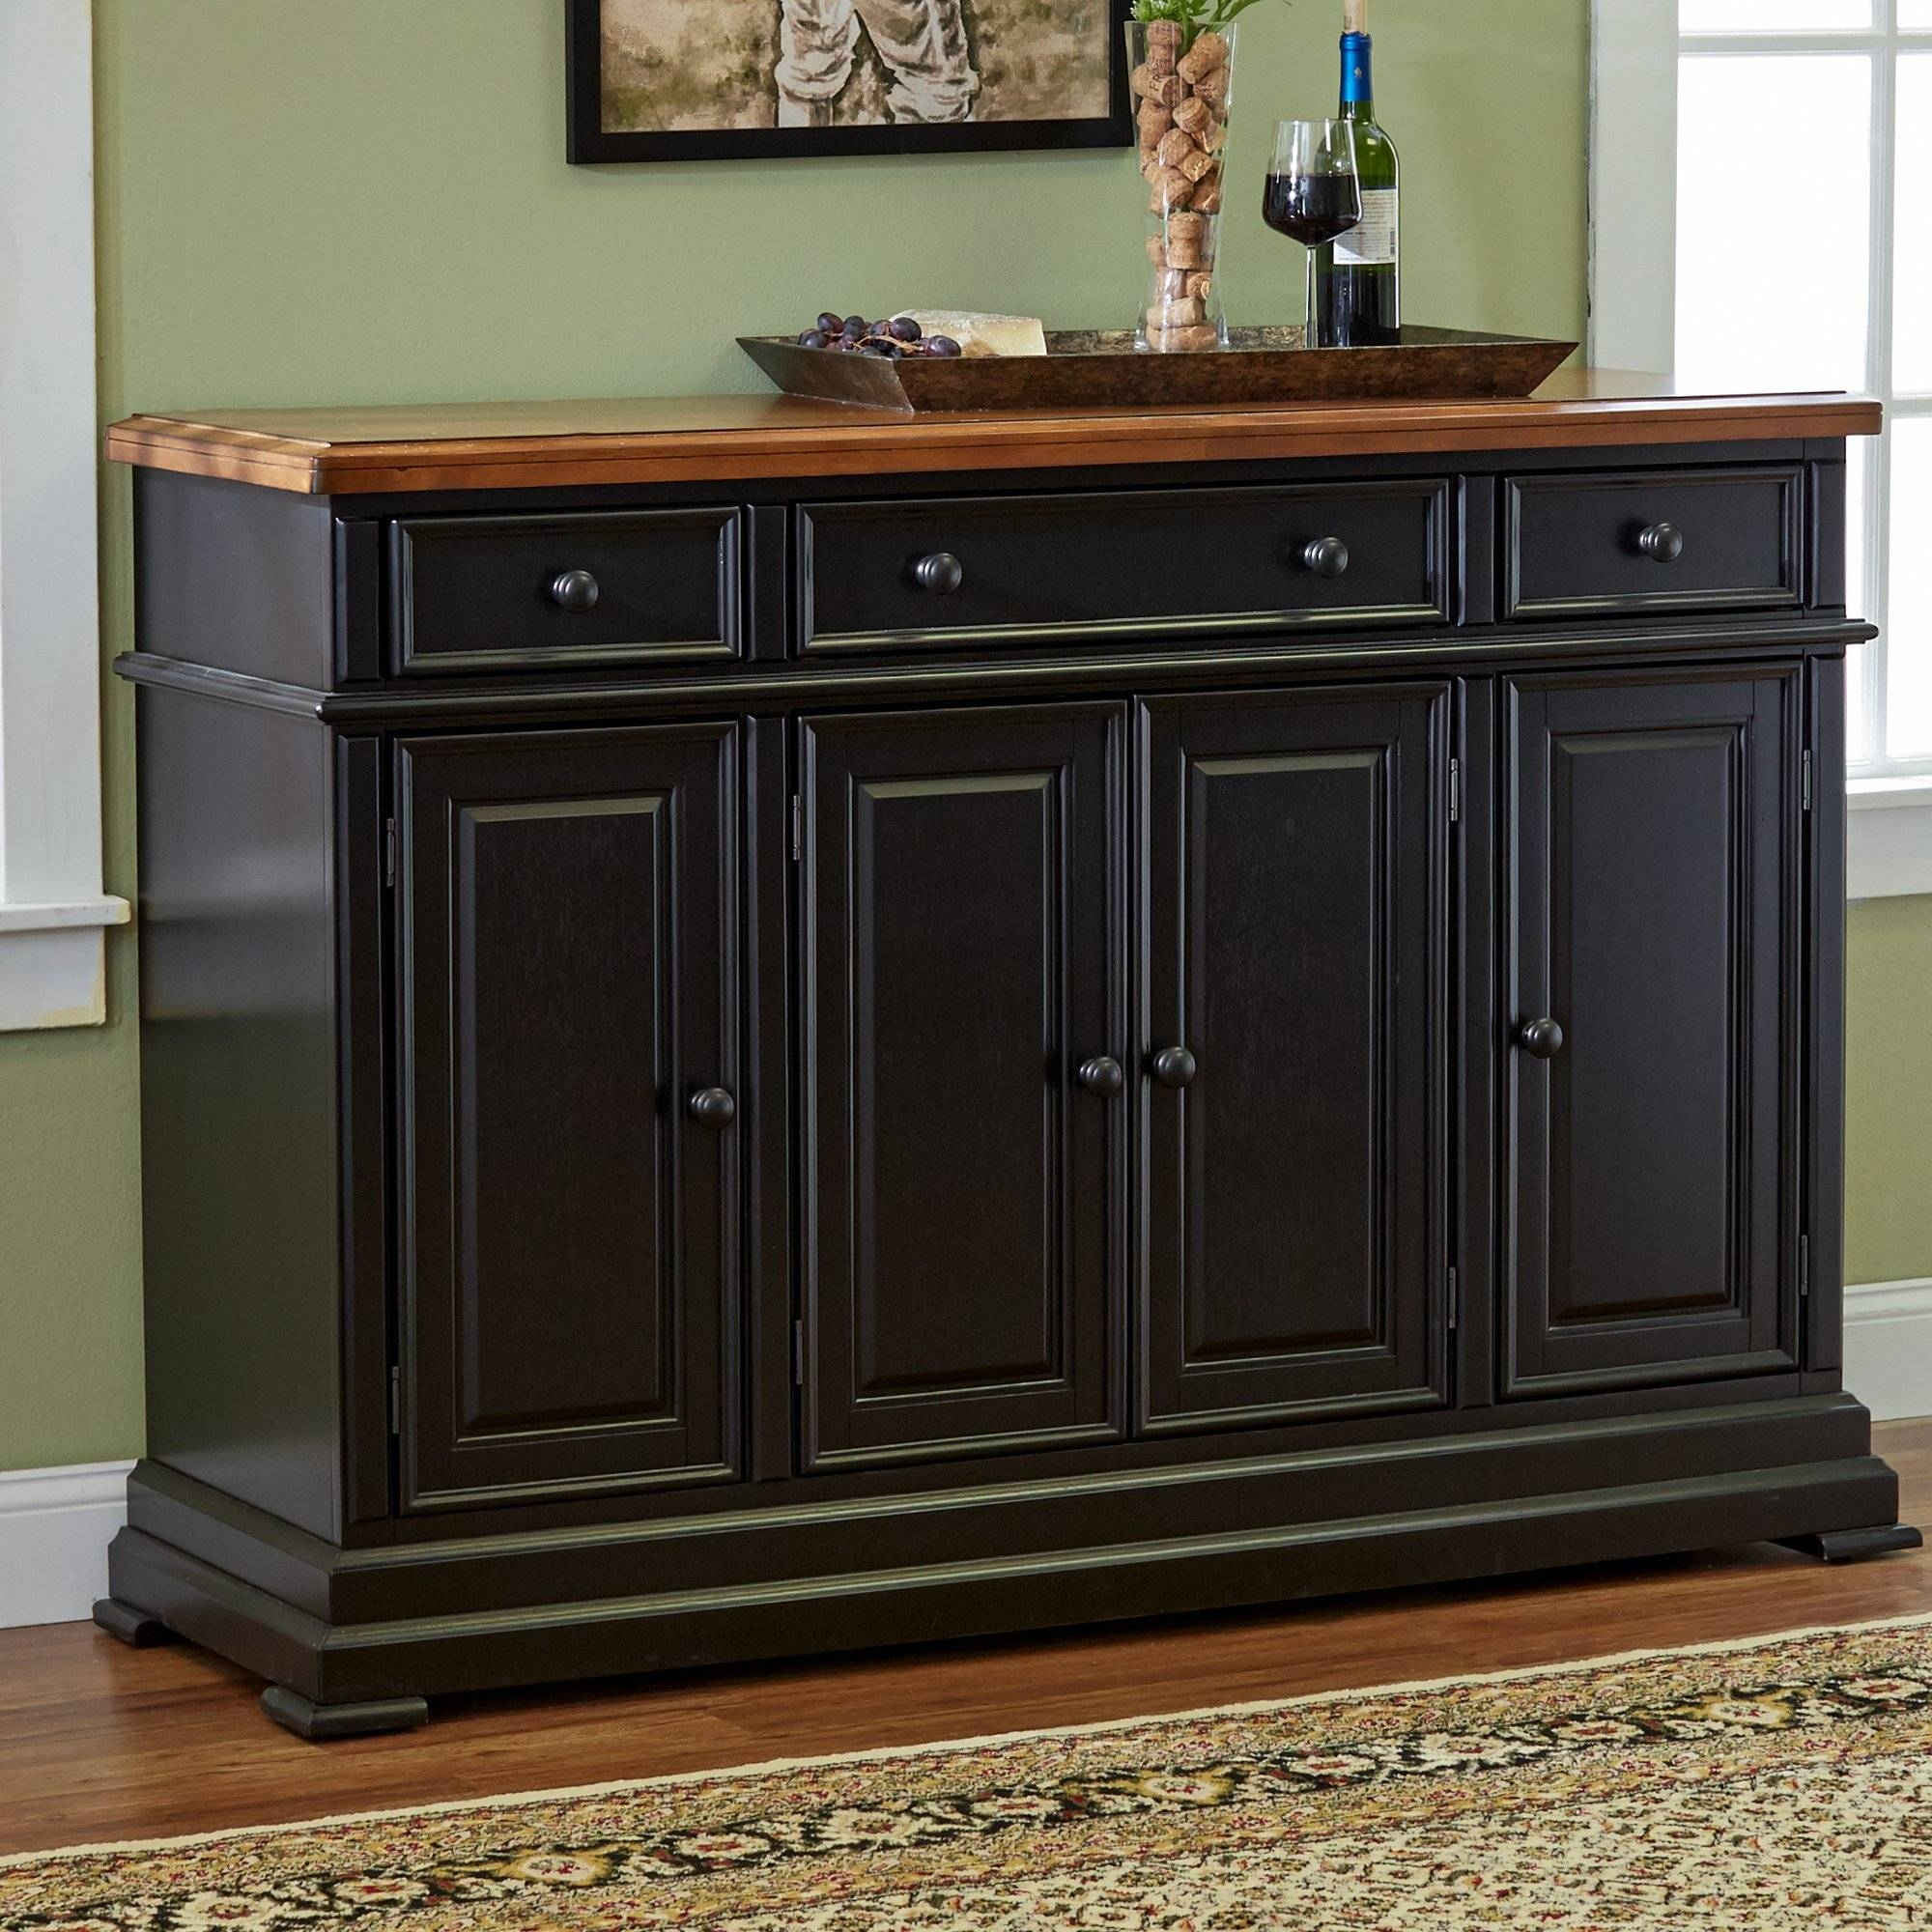 Furniture: Sideboard Buffet Table | China Buffet Furniture Pertaining To Distressed Wood Sideboard (View 10 of 20)